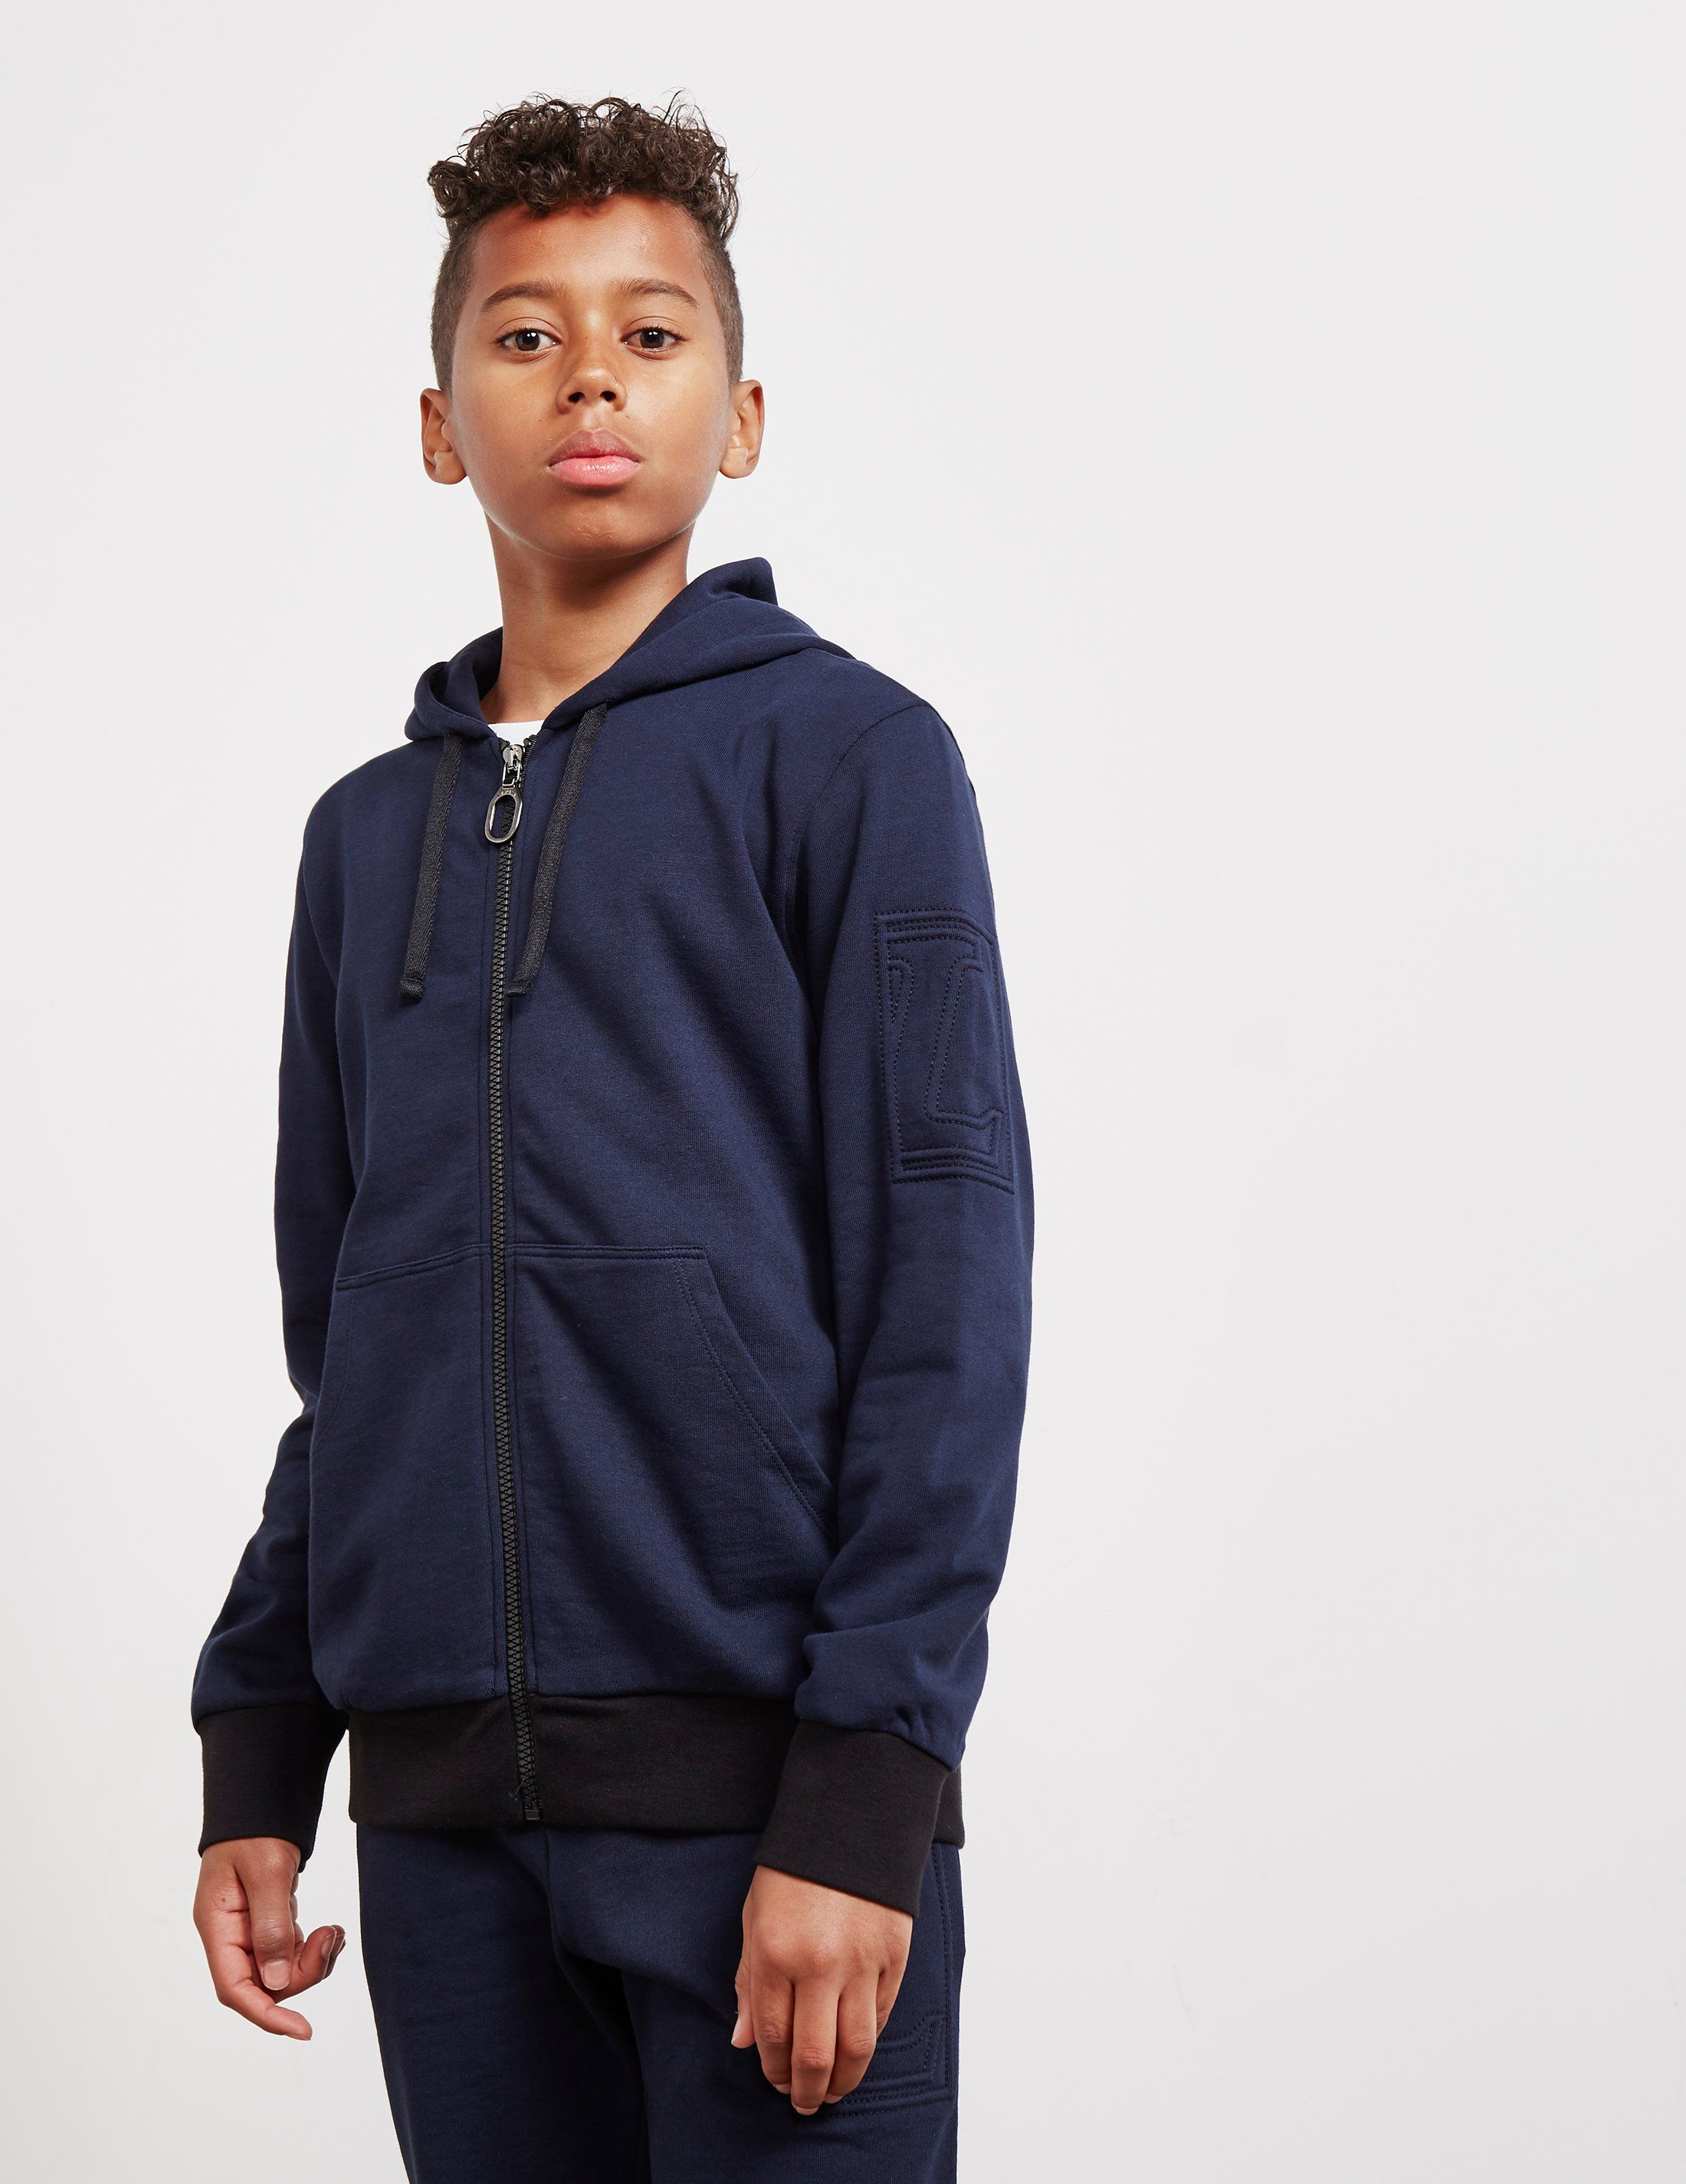 Lanvin Track Top - Online Exclusive